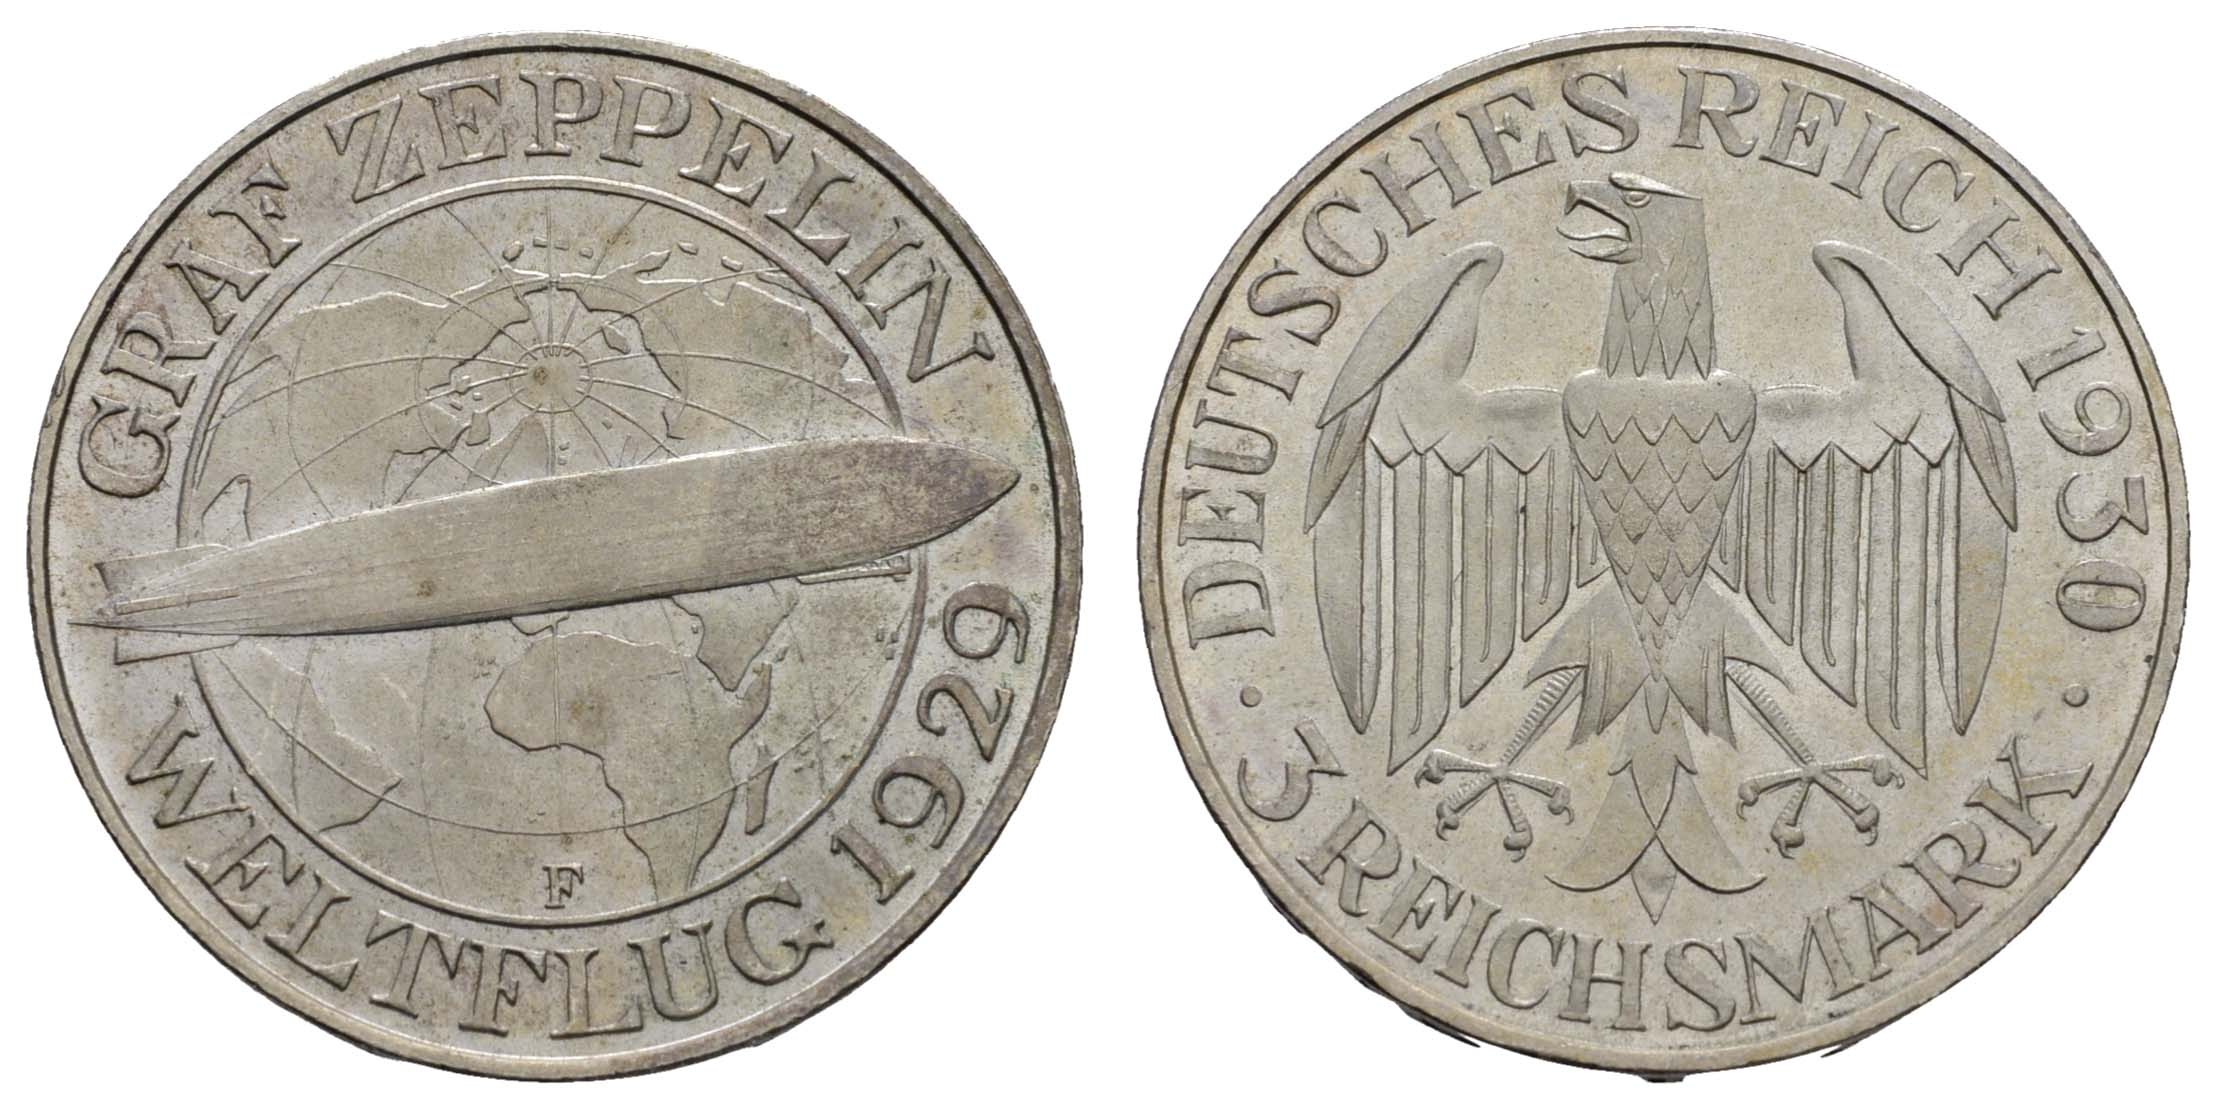 Lot 1017 - deutschland weimarer republik -  Auktionshaus Ulrich Felzmann GmbH & Co. KG Coins single lots